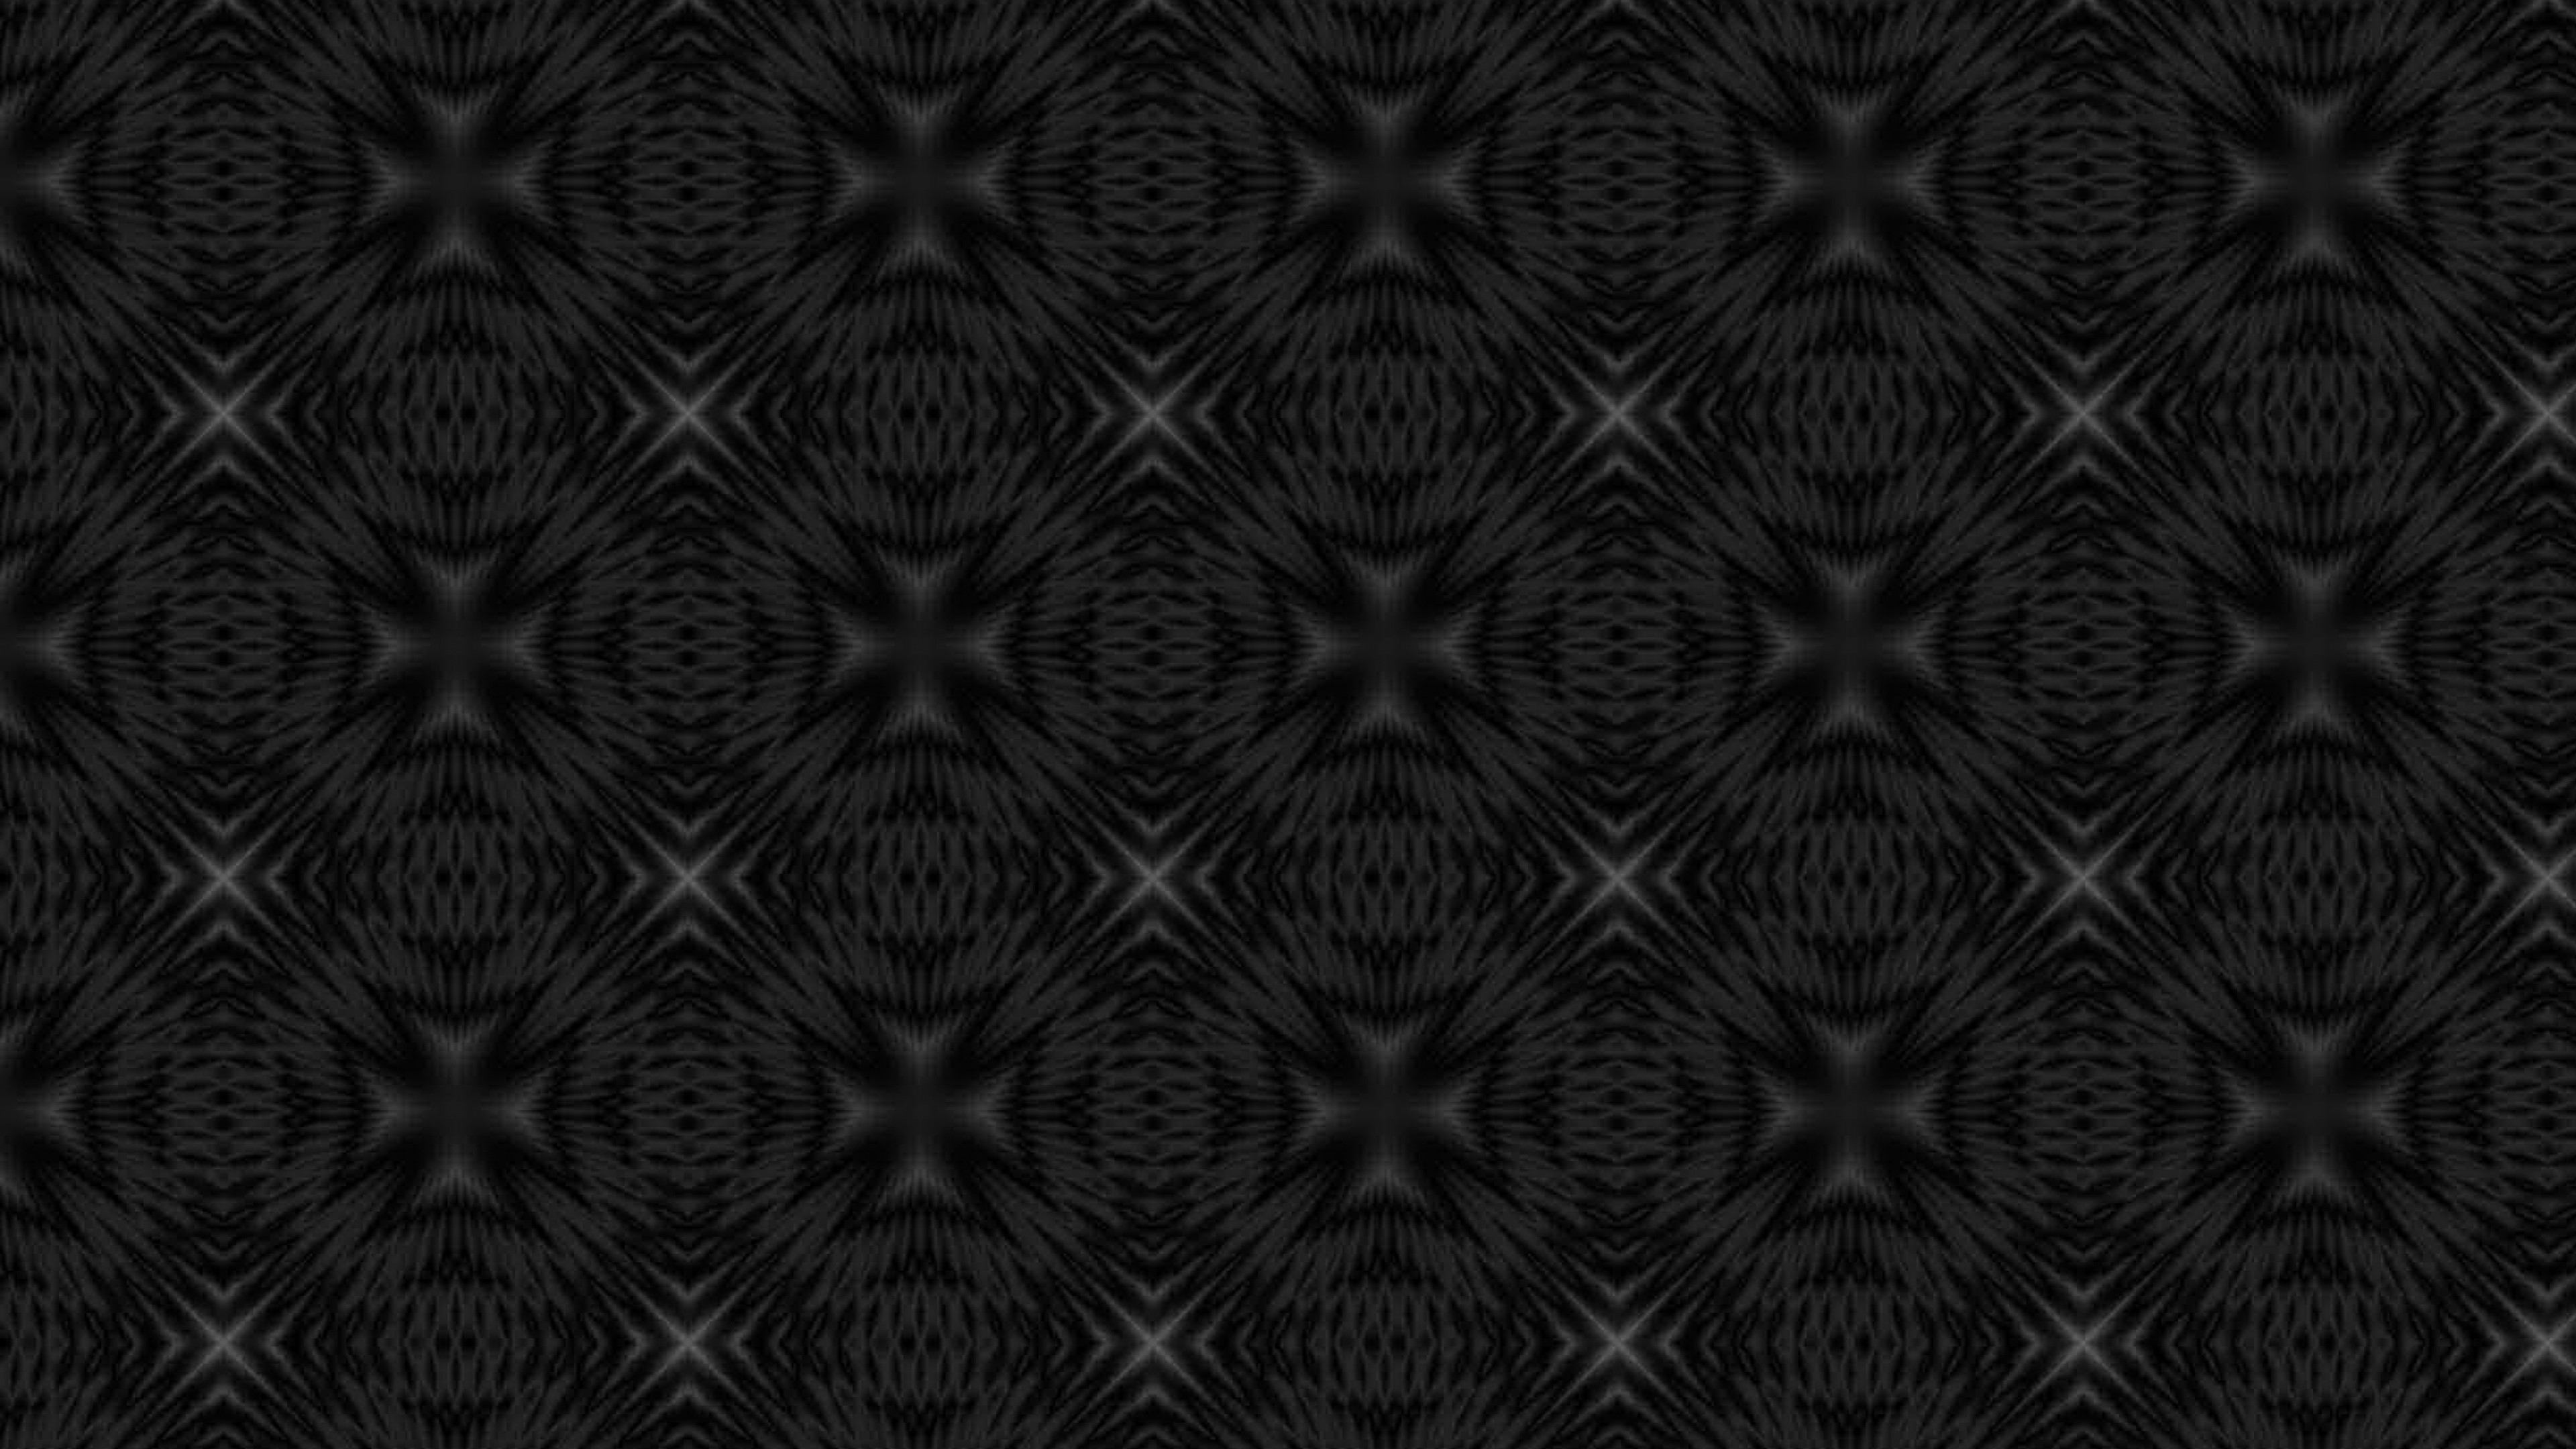 Preview wallpaper black and white, abstract, black background 3840×2160